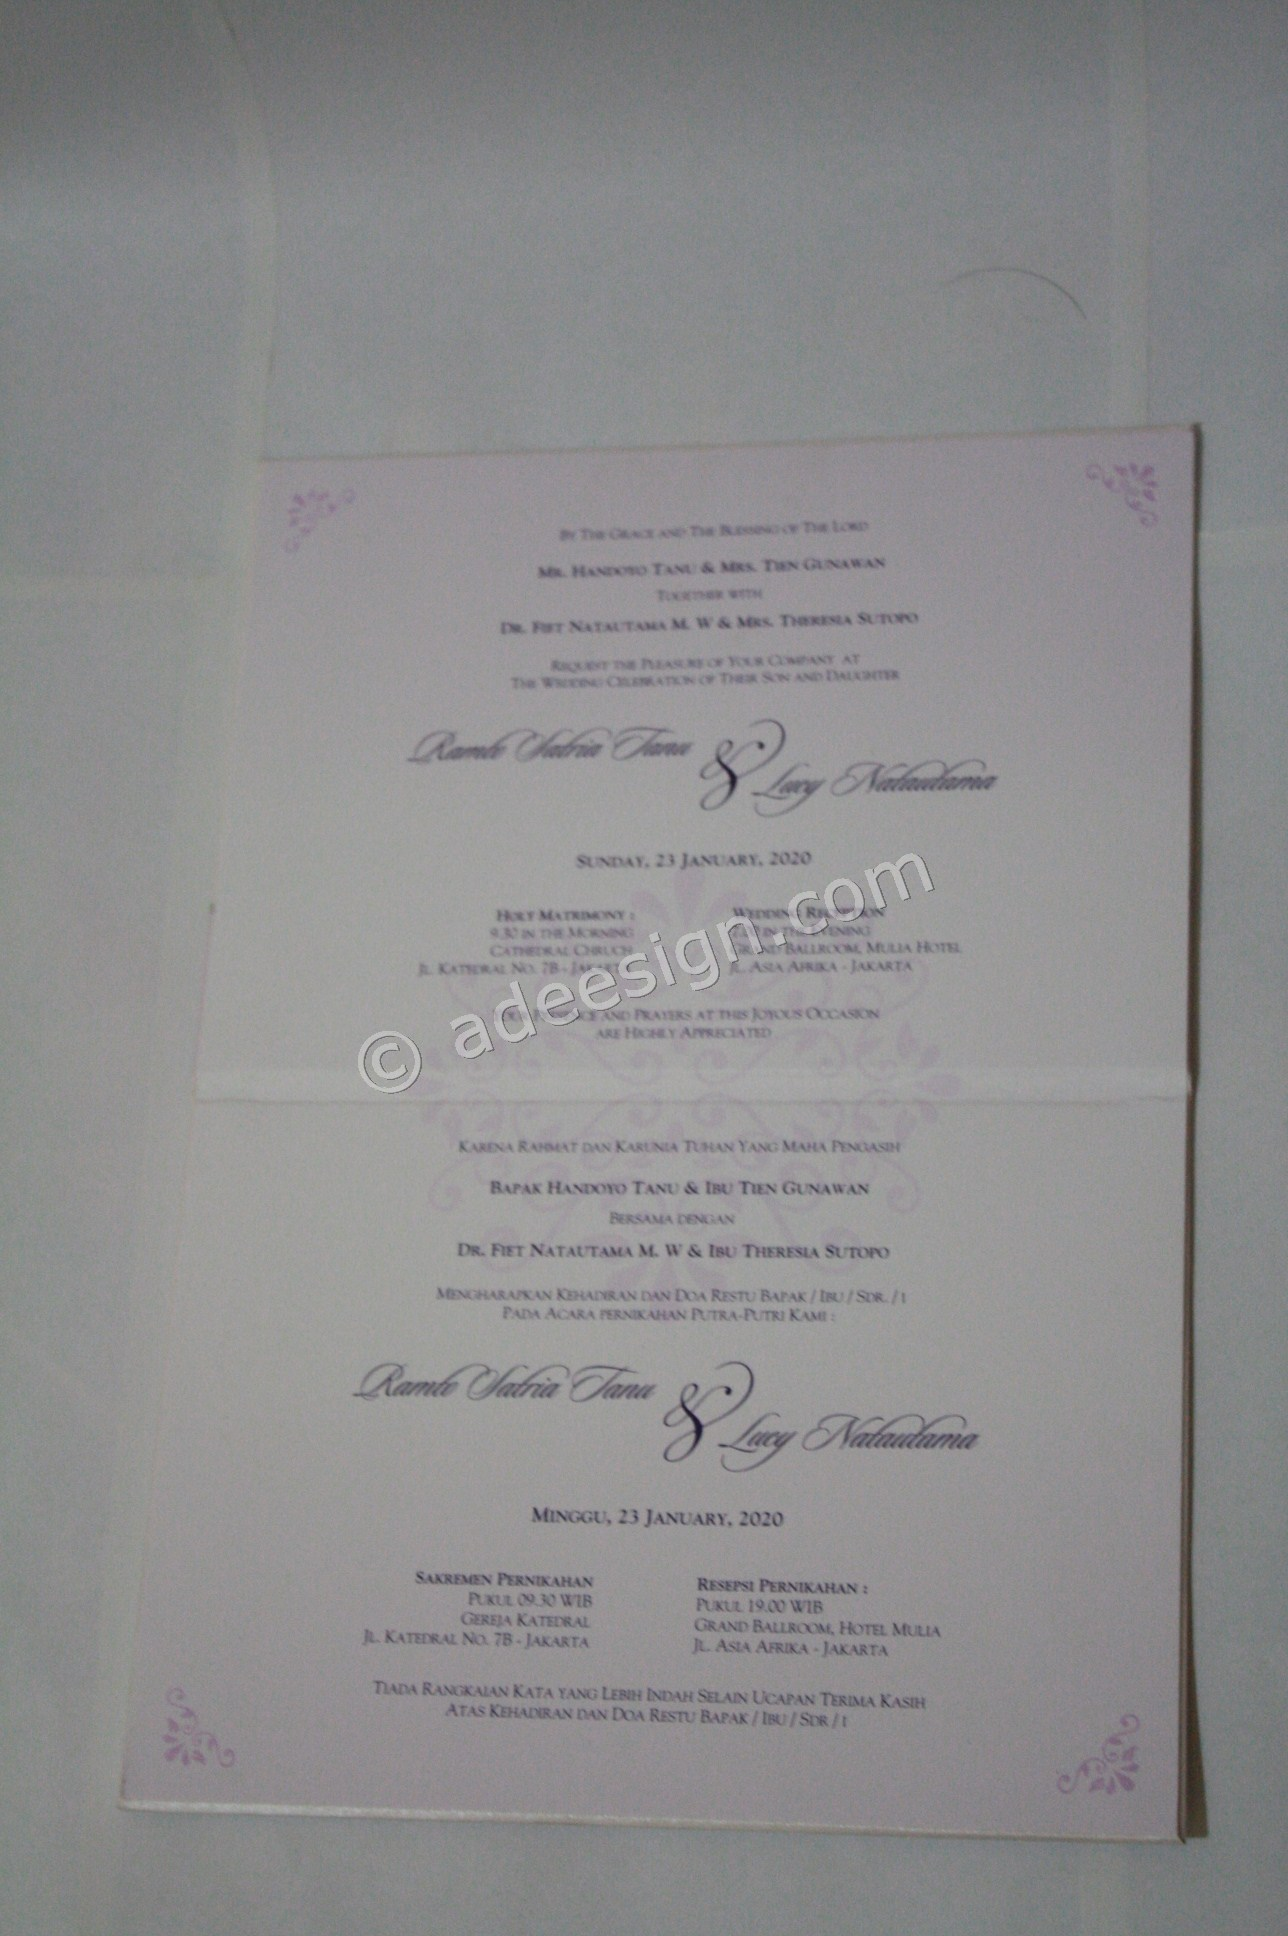 Undangan Pernikahan Hardcover Vonny dan Ferie 5 - Membuat Wedding Invitations Unik dan Simple di Sawahan